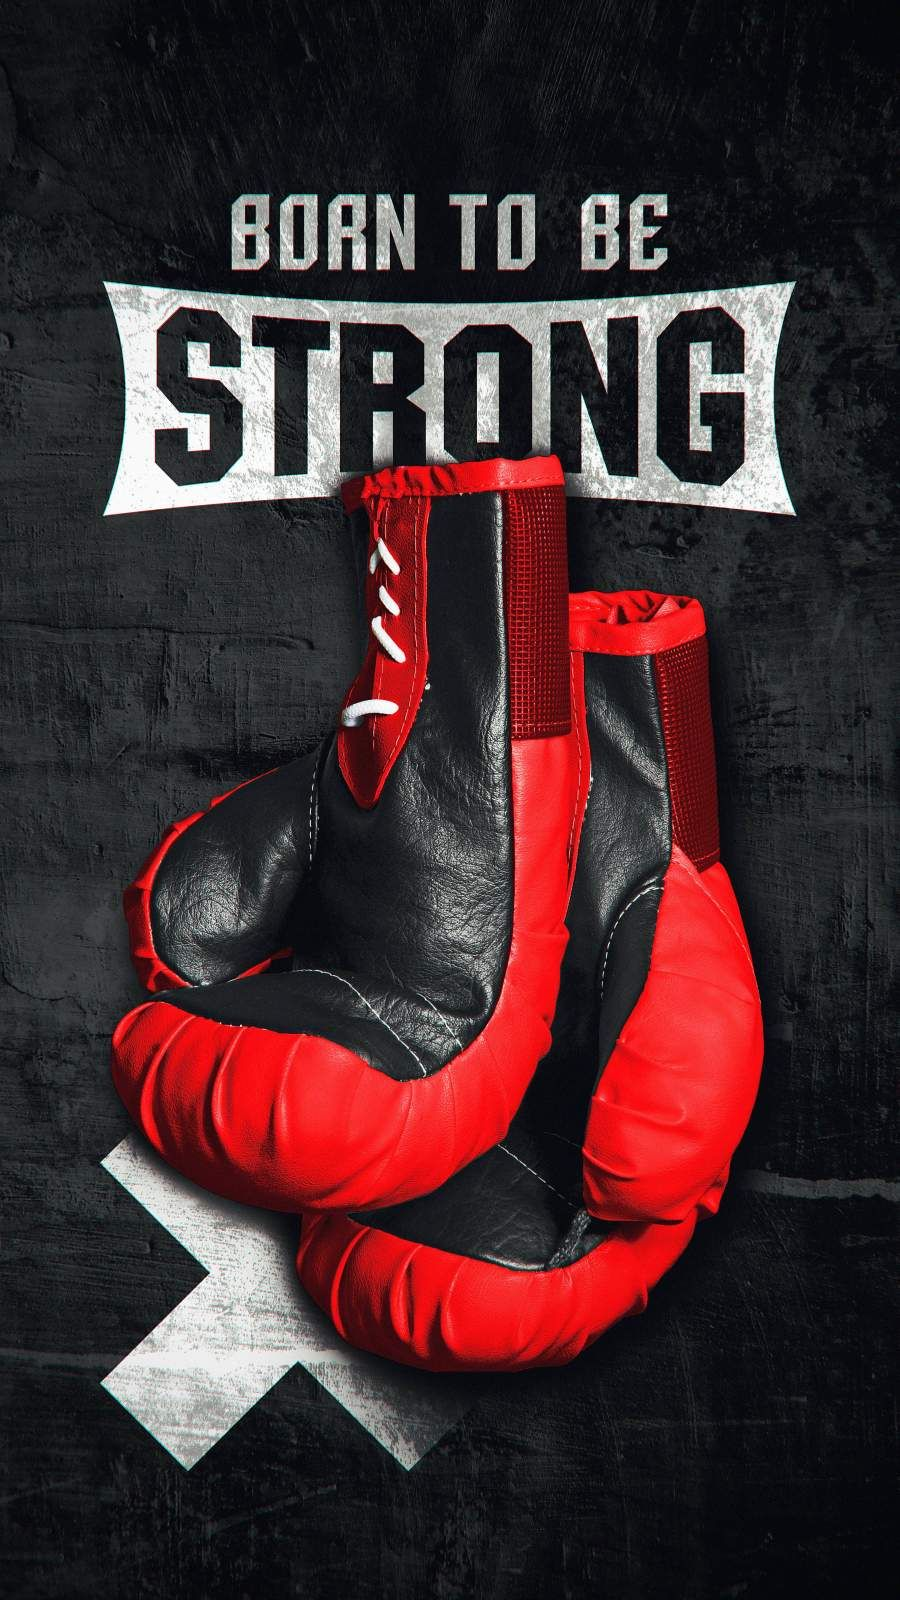 Born To Be Strong Iphone Wallpaper Iphone Wallpaper Funny Phone Wallpaper Phone Wallpaper For Men